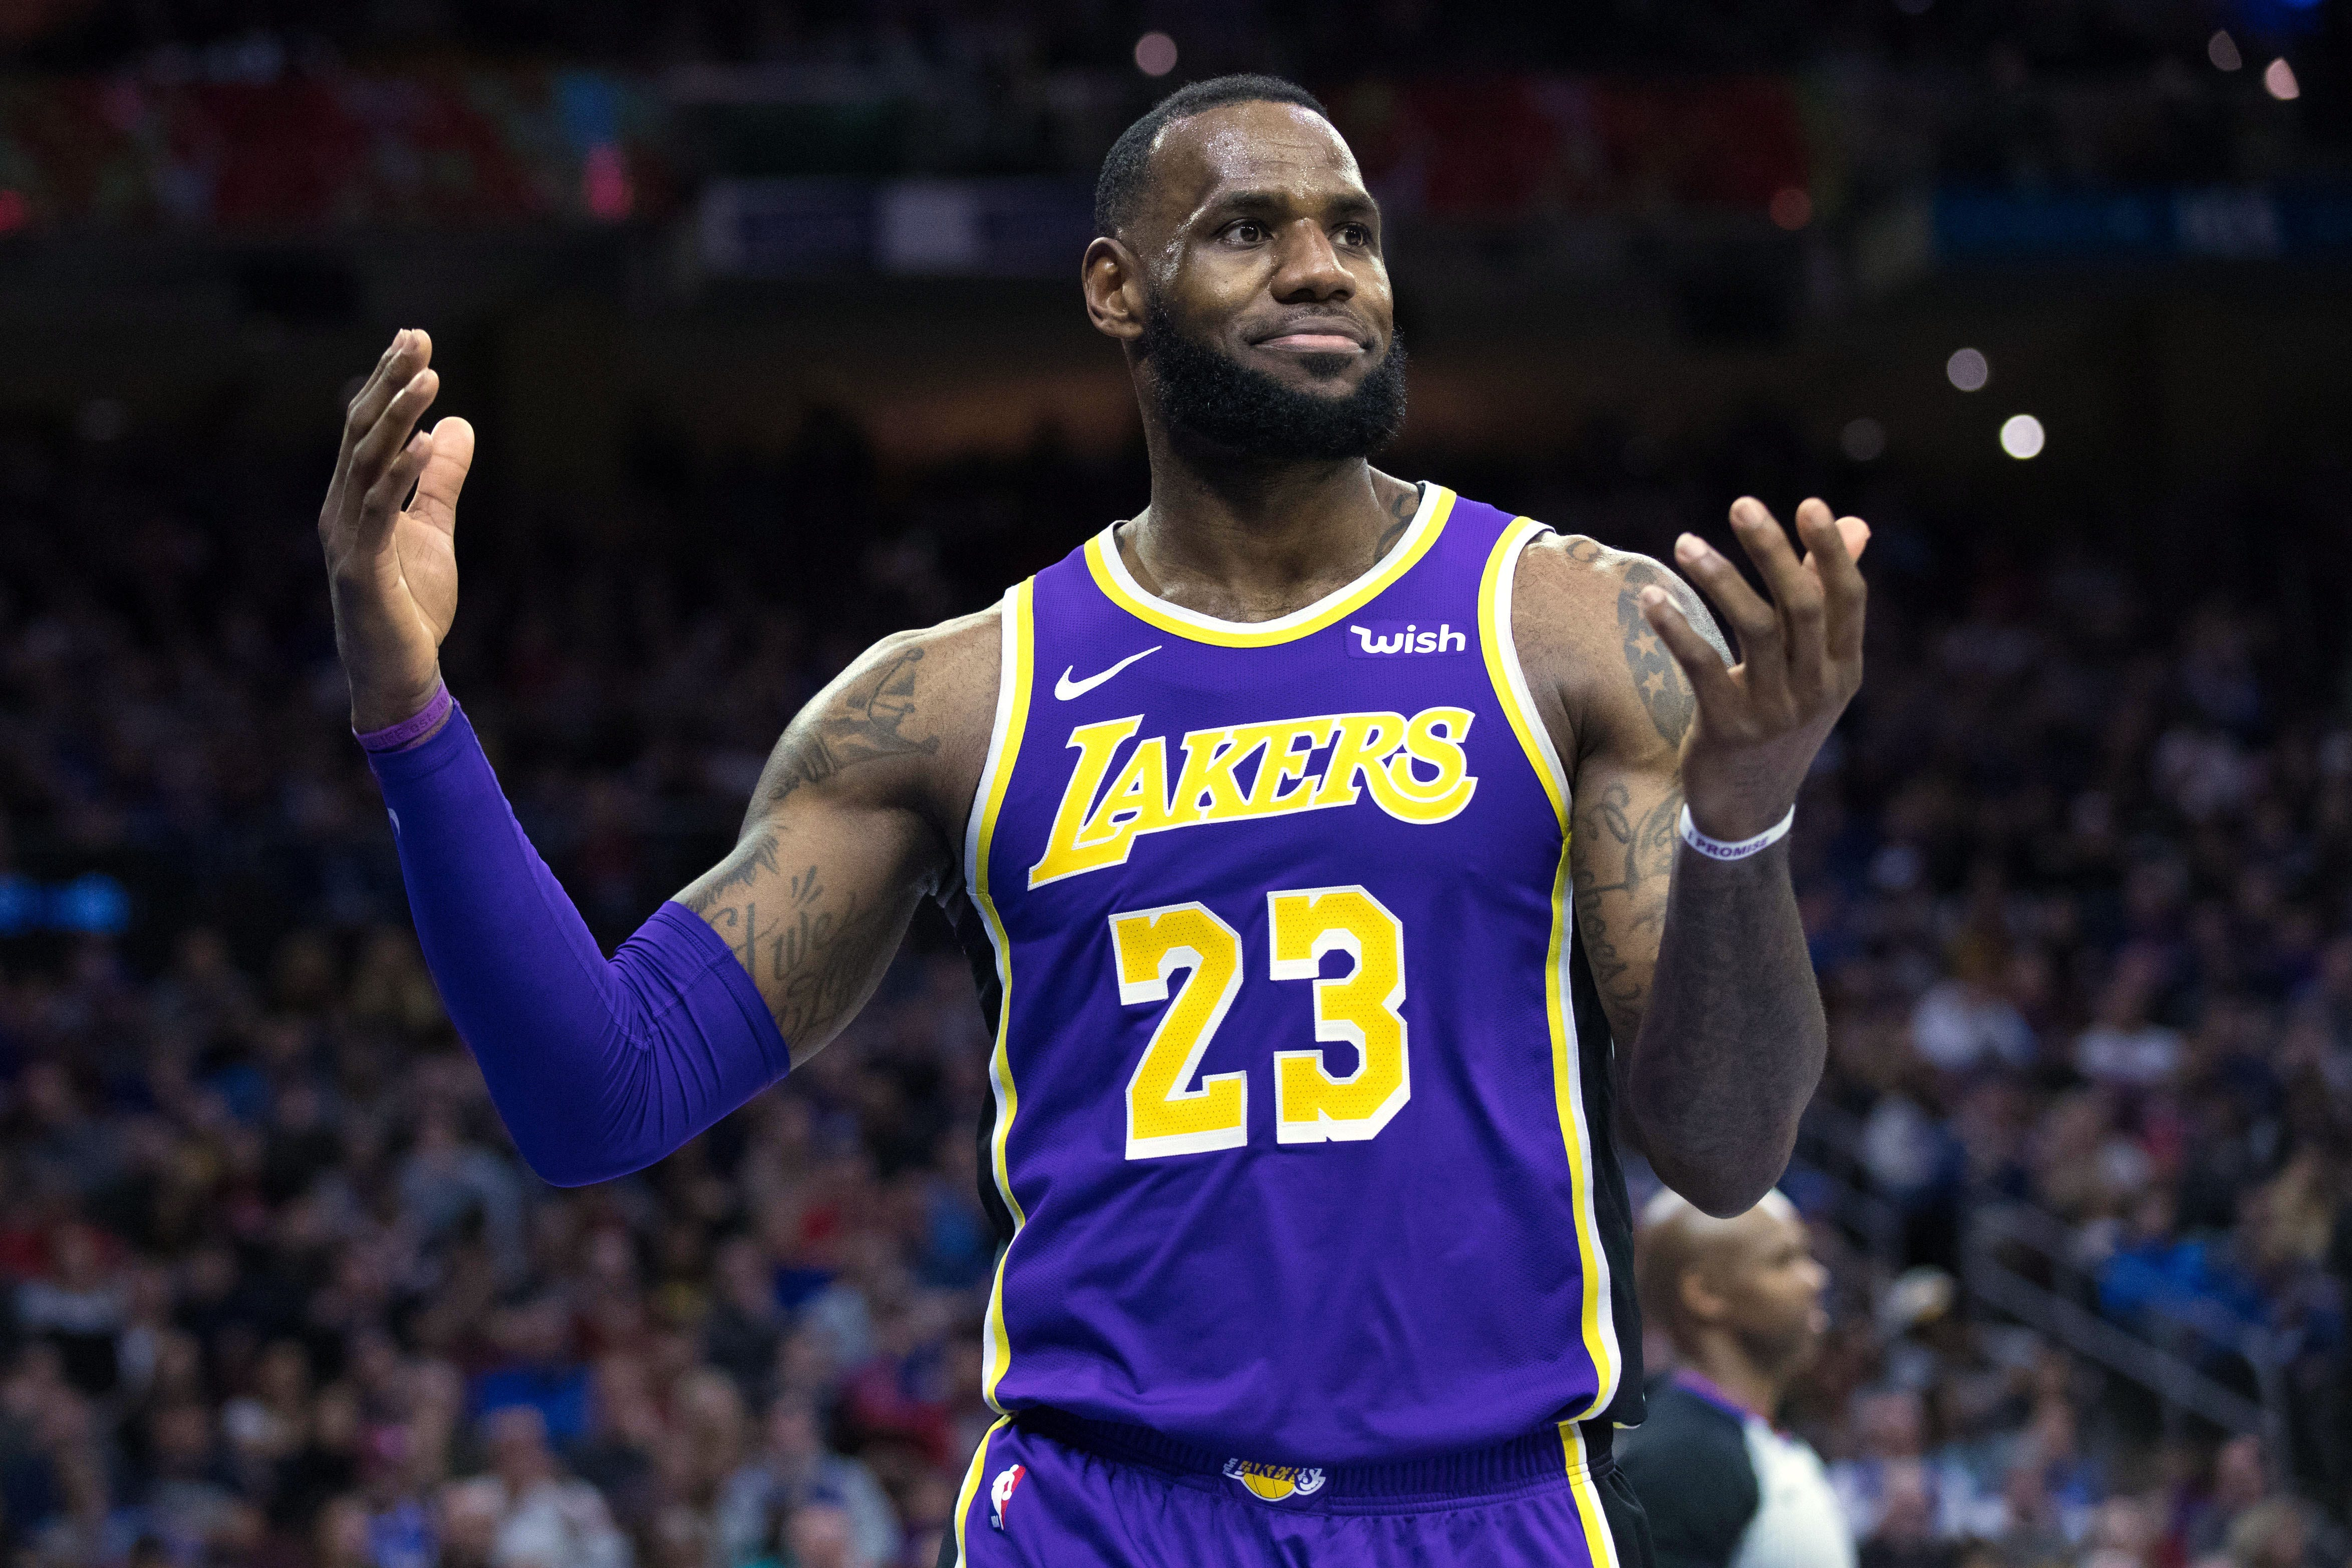 836d9a8a141 Los Angeles Lakers forward LeBron James reacts during a loss to the  Philadelphia 76ers.